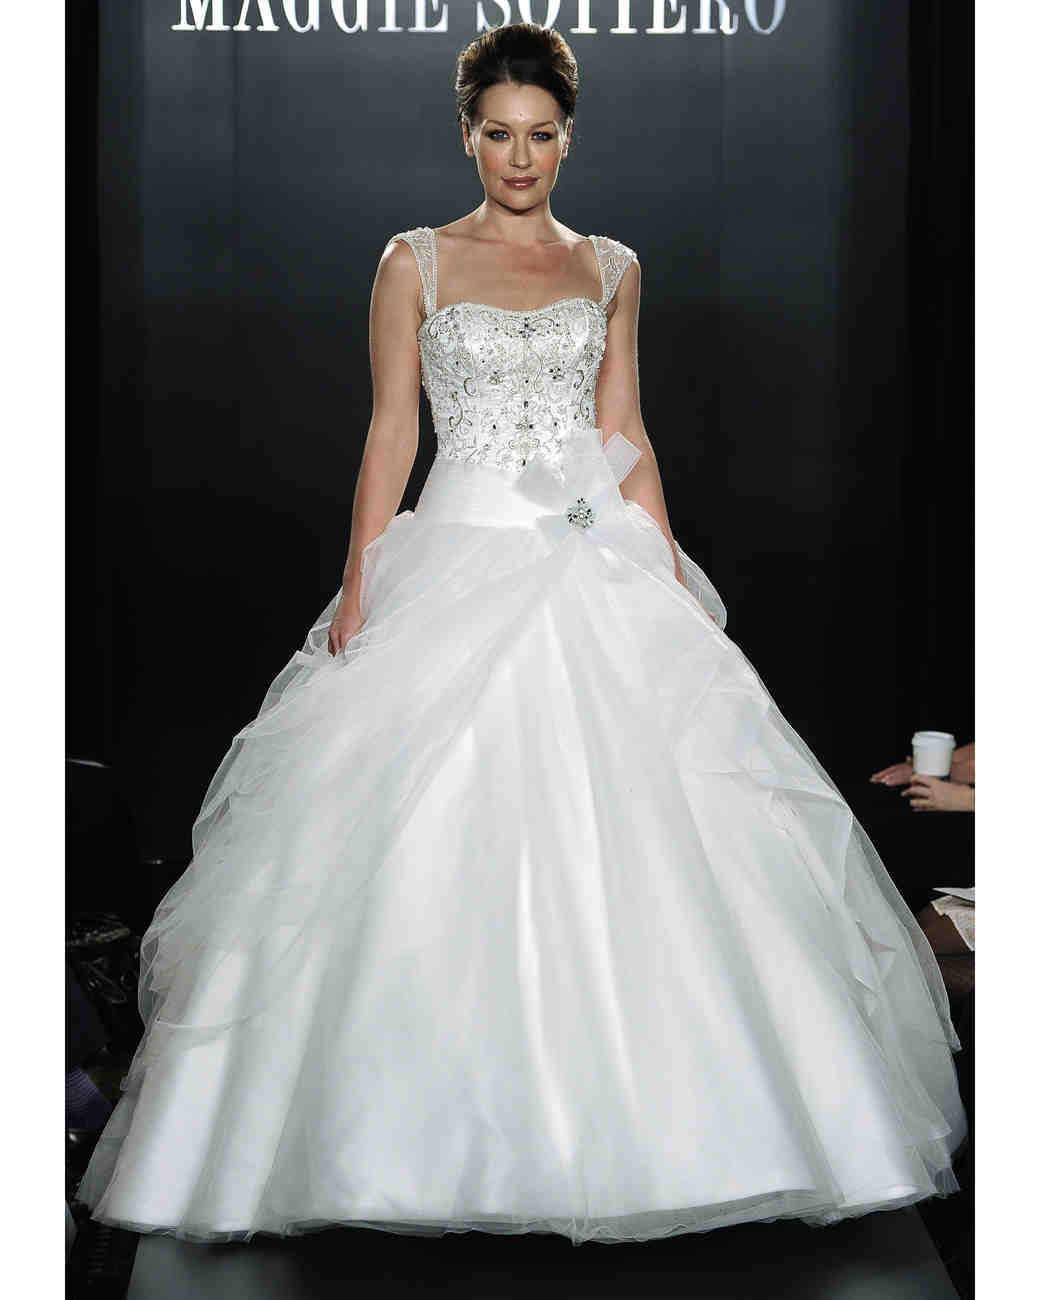 maggie-sottero-fall2012-wd108109_023.jpg